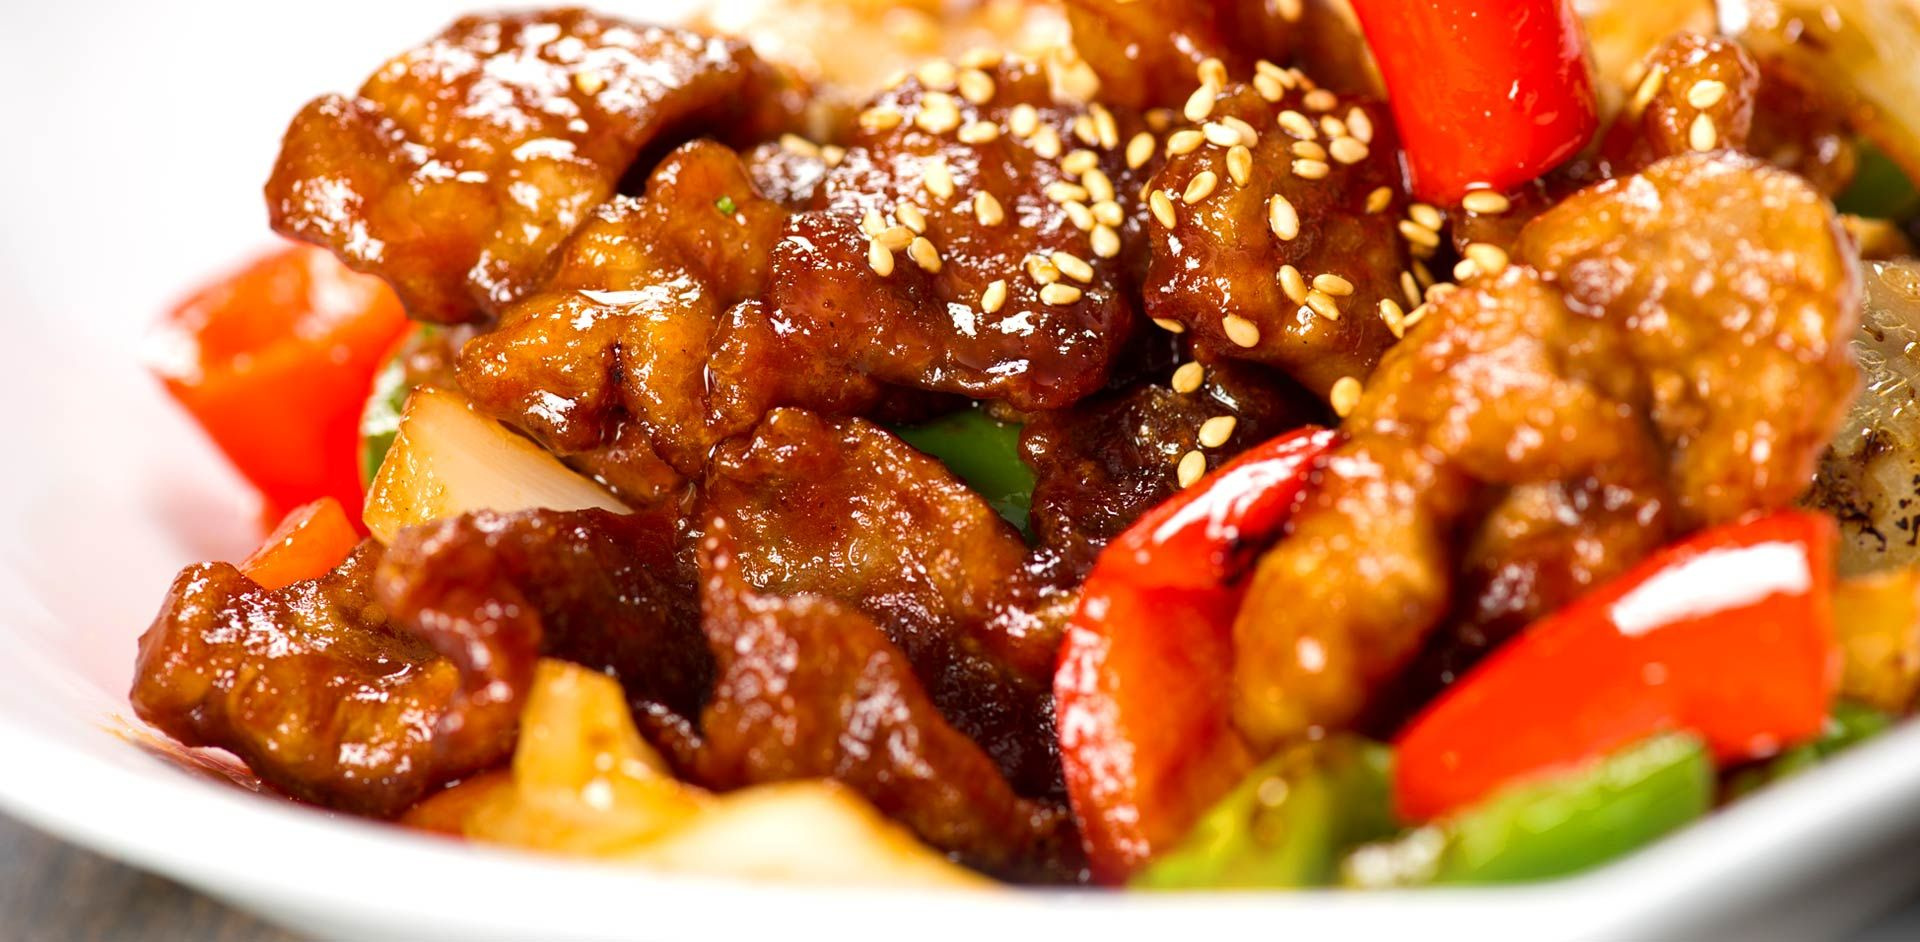 Asian Cuisine The Satisfaction And Pleasure I Get From Chinese Food Is Beyond Explanation The Umami Taste And The Sweet And Sour Pork Best Chinese Food Food